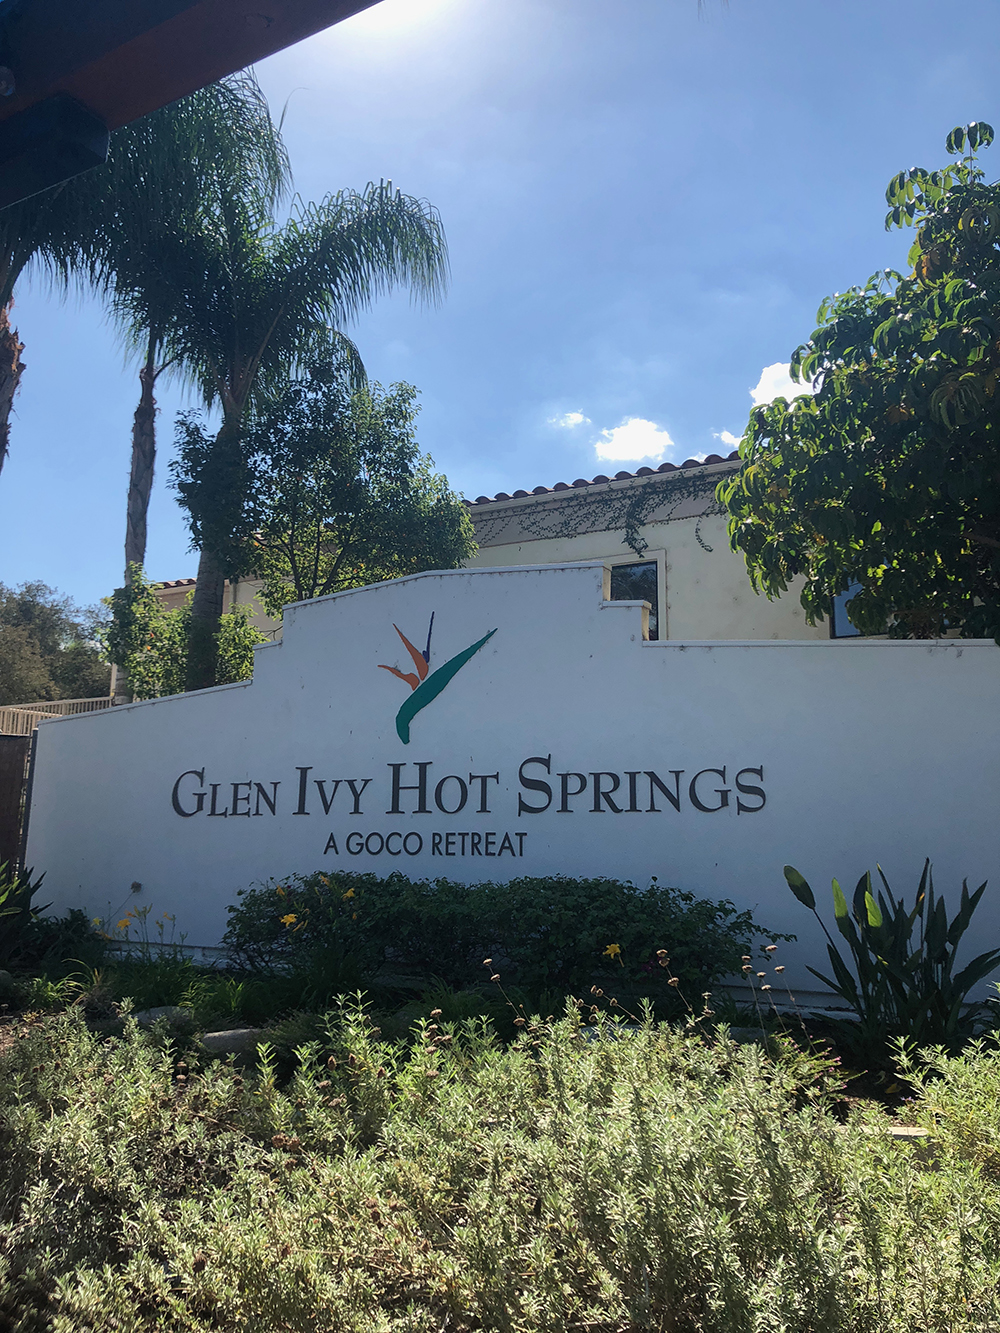 Glen Ivy Hot Springs is an all-day wellness escape offering spa treatments, healthy food, activities, and more.